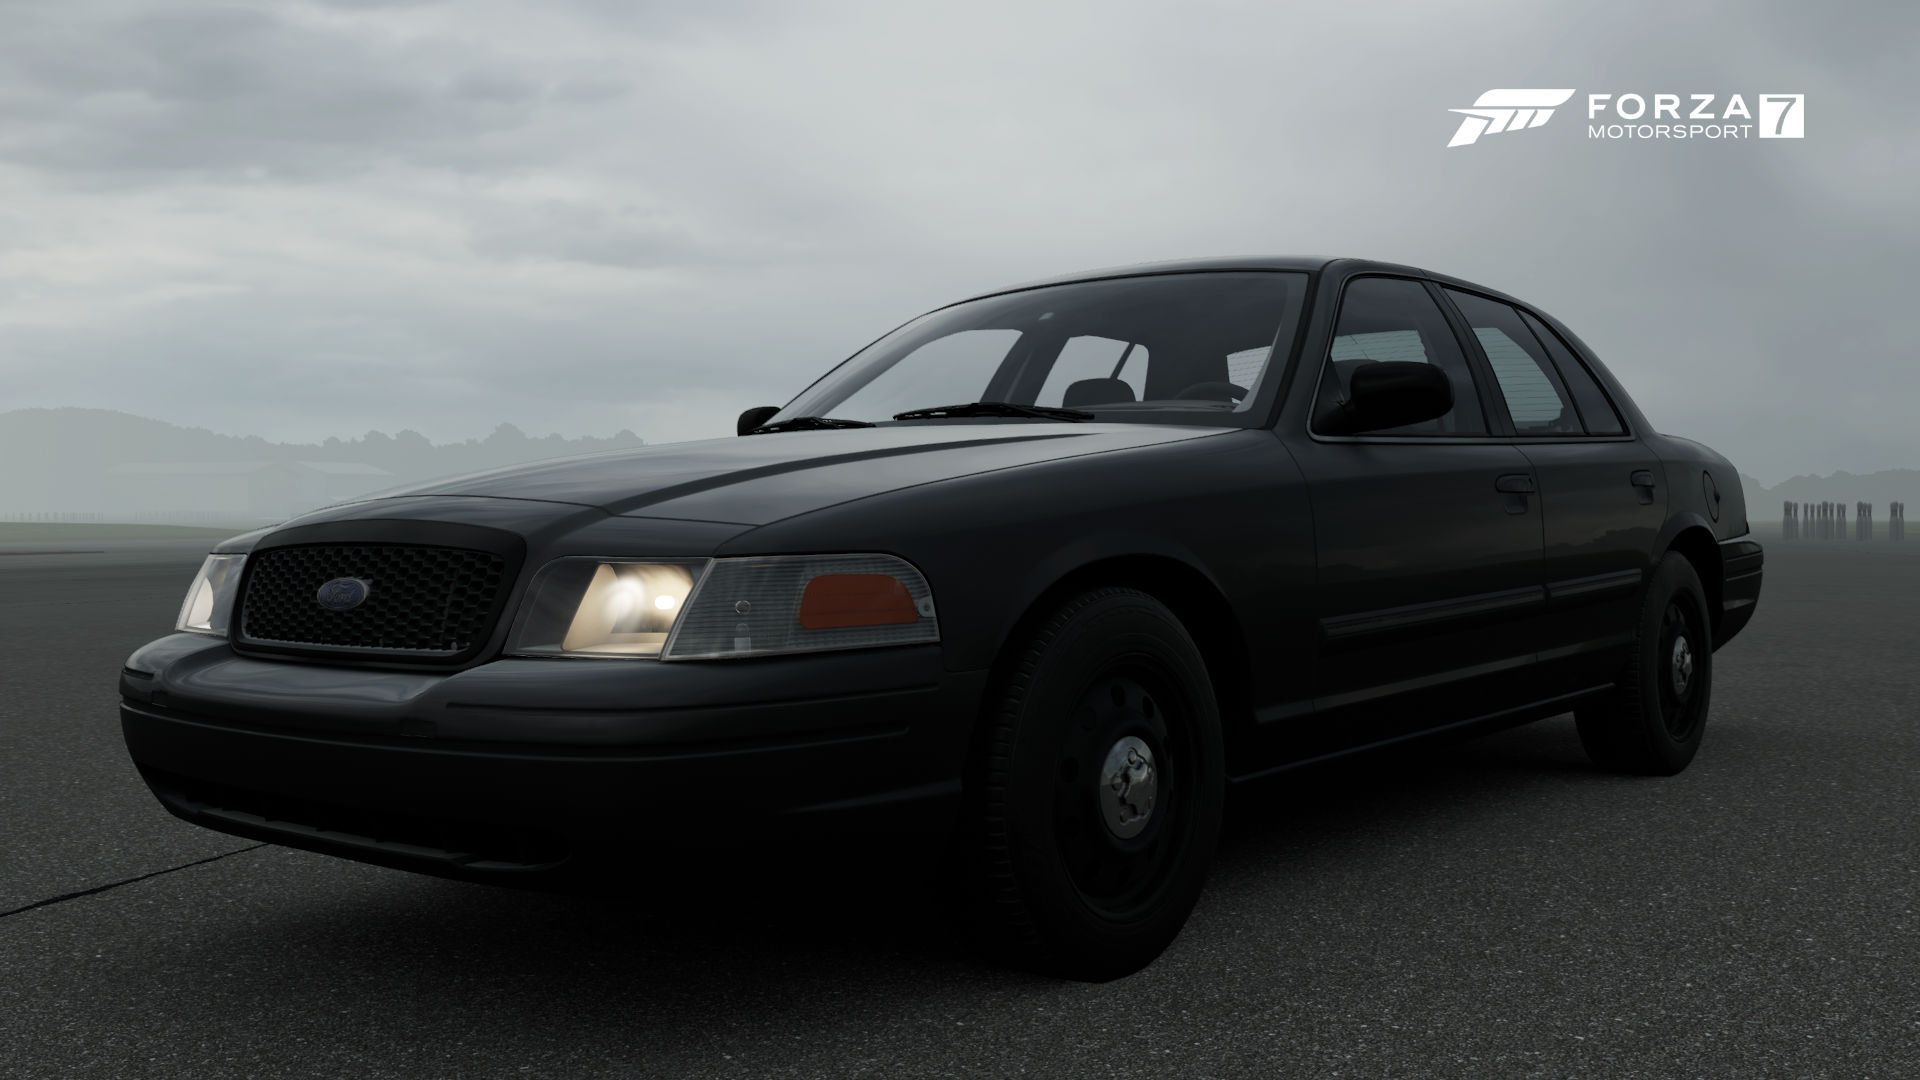 ford crown victoria police interceptor forza motorsport wiki fandom powered by wikia. Black Bedroom Furniture Sets. Home Design Ideas